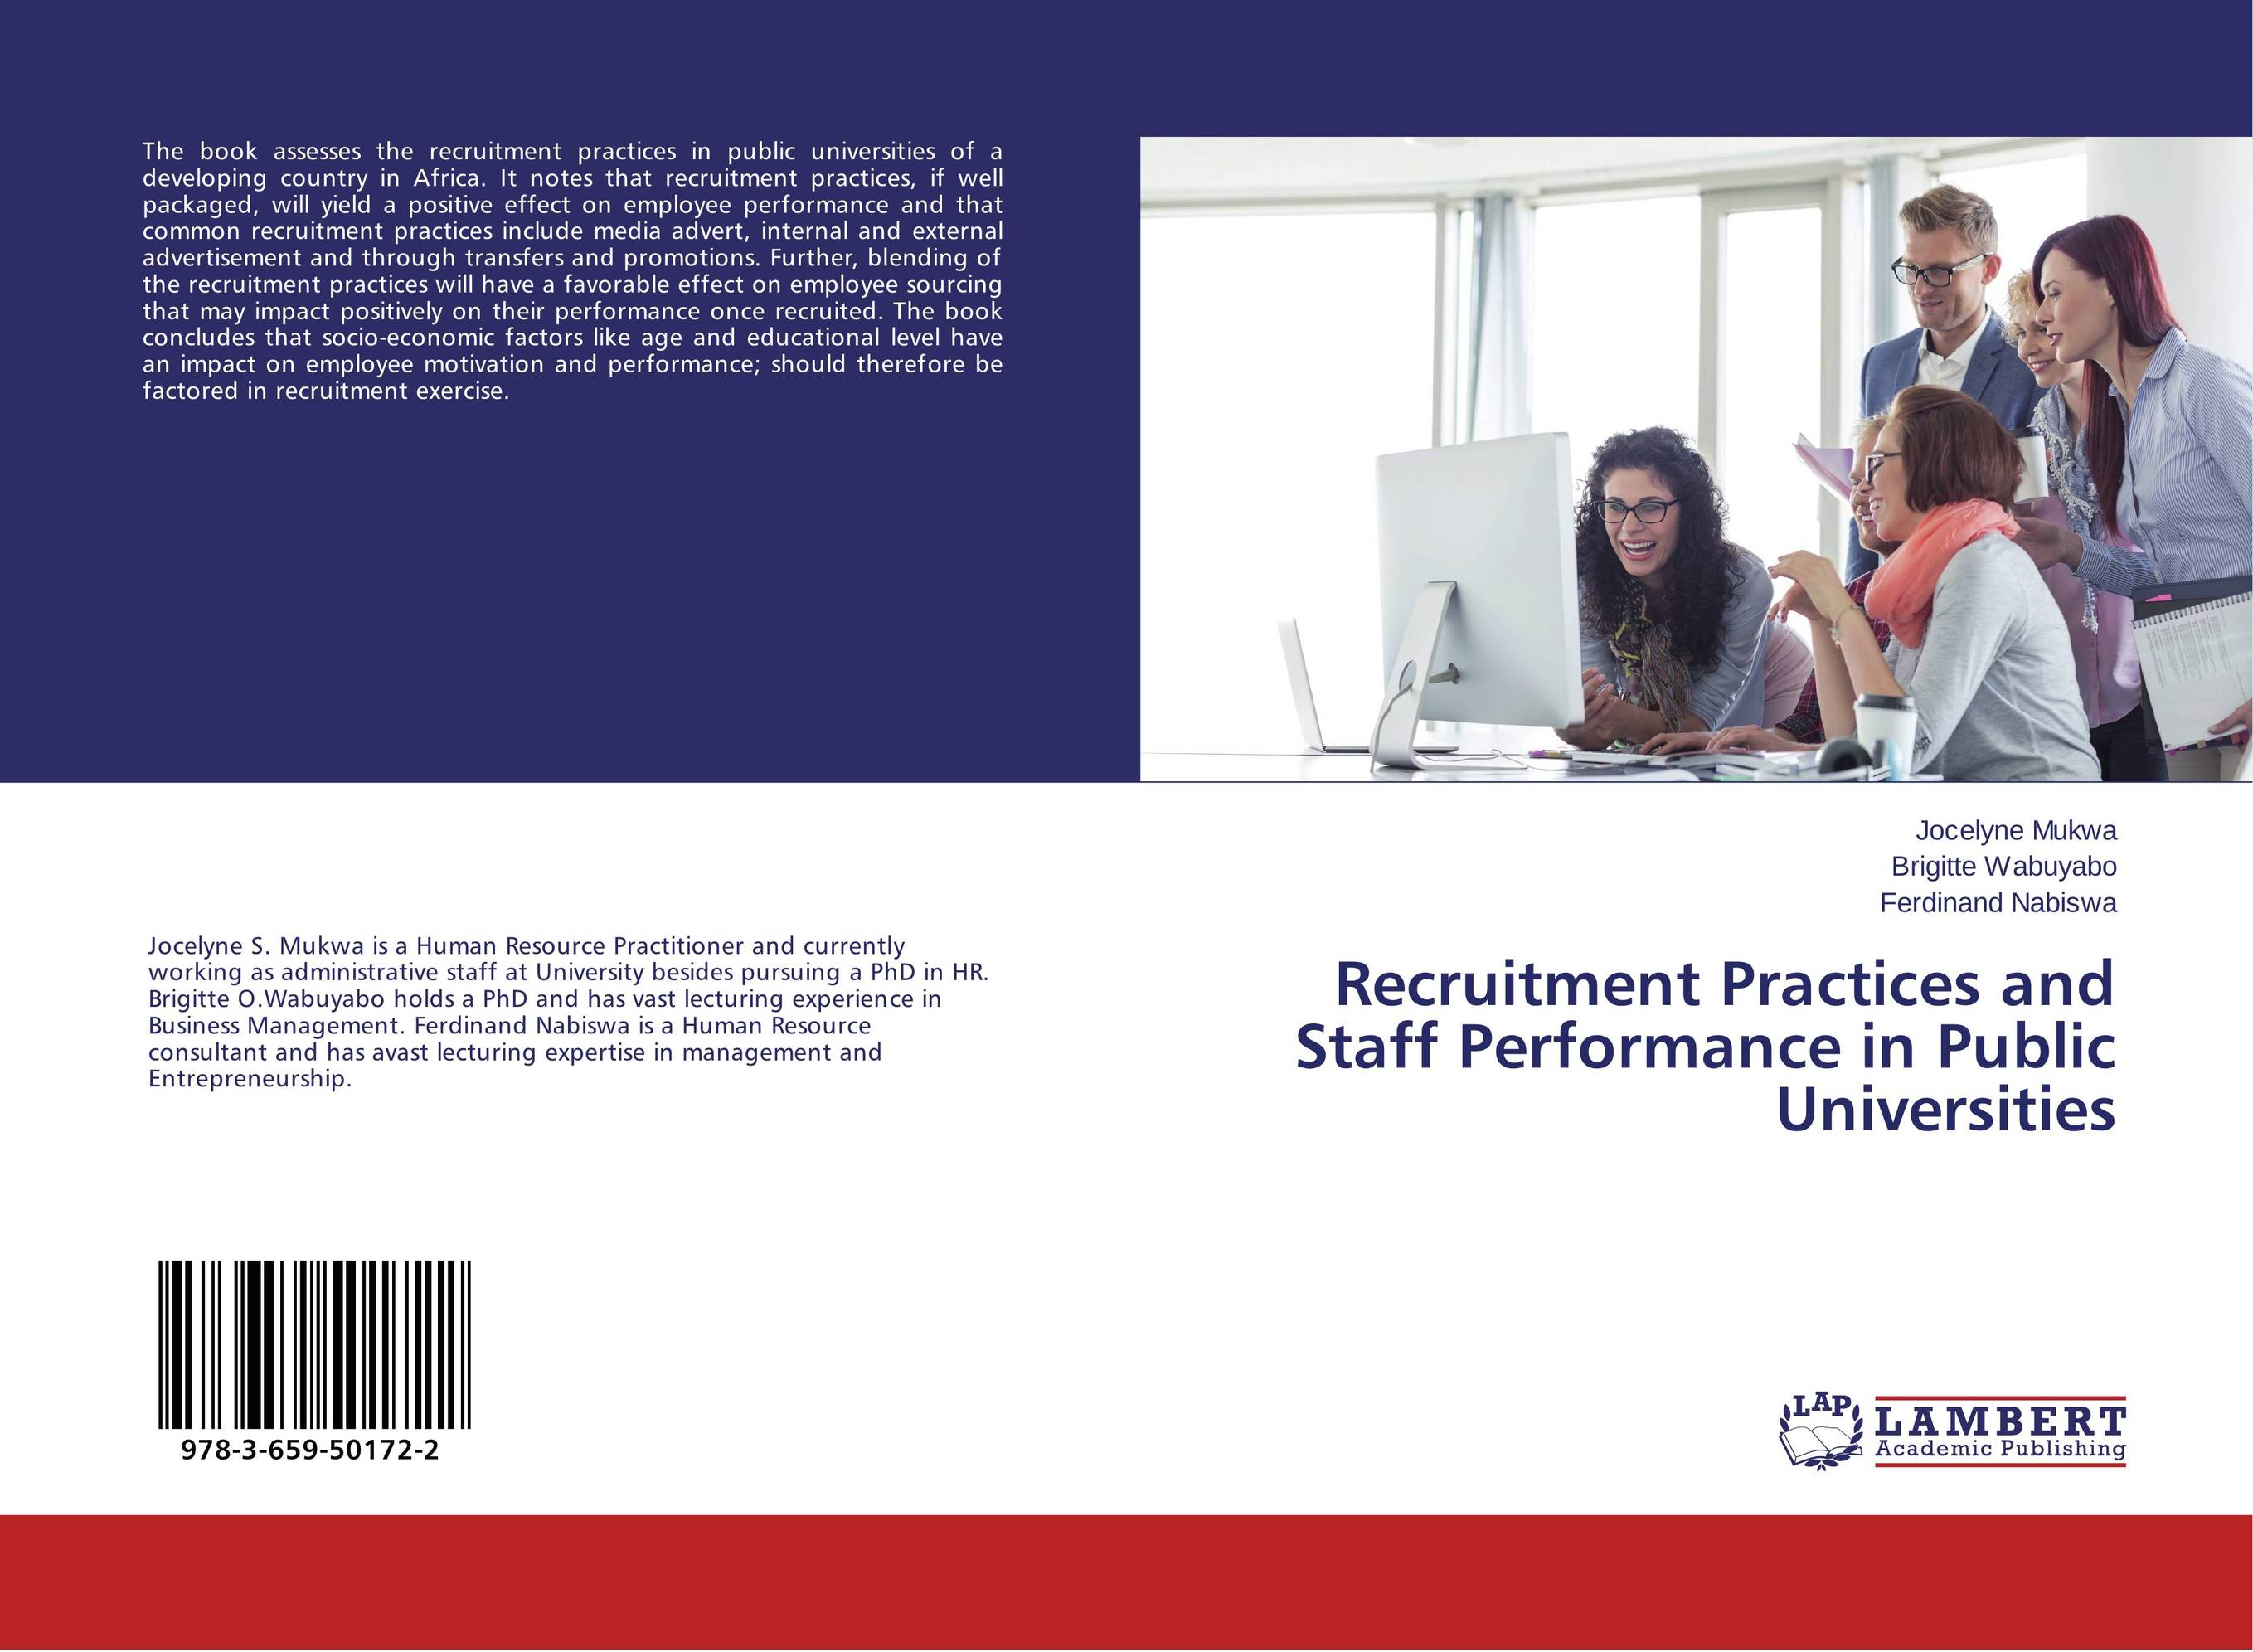 Recruitment Practices and Staff Performance in Public Universities the impact of motivation related reform on employee performance